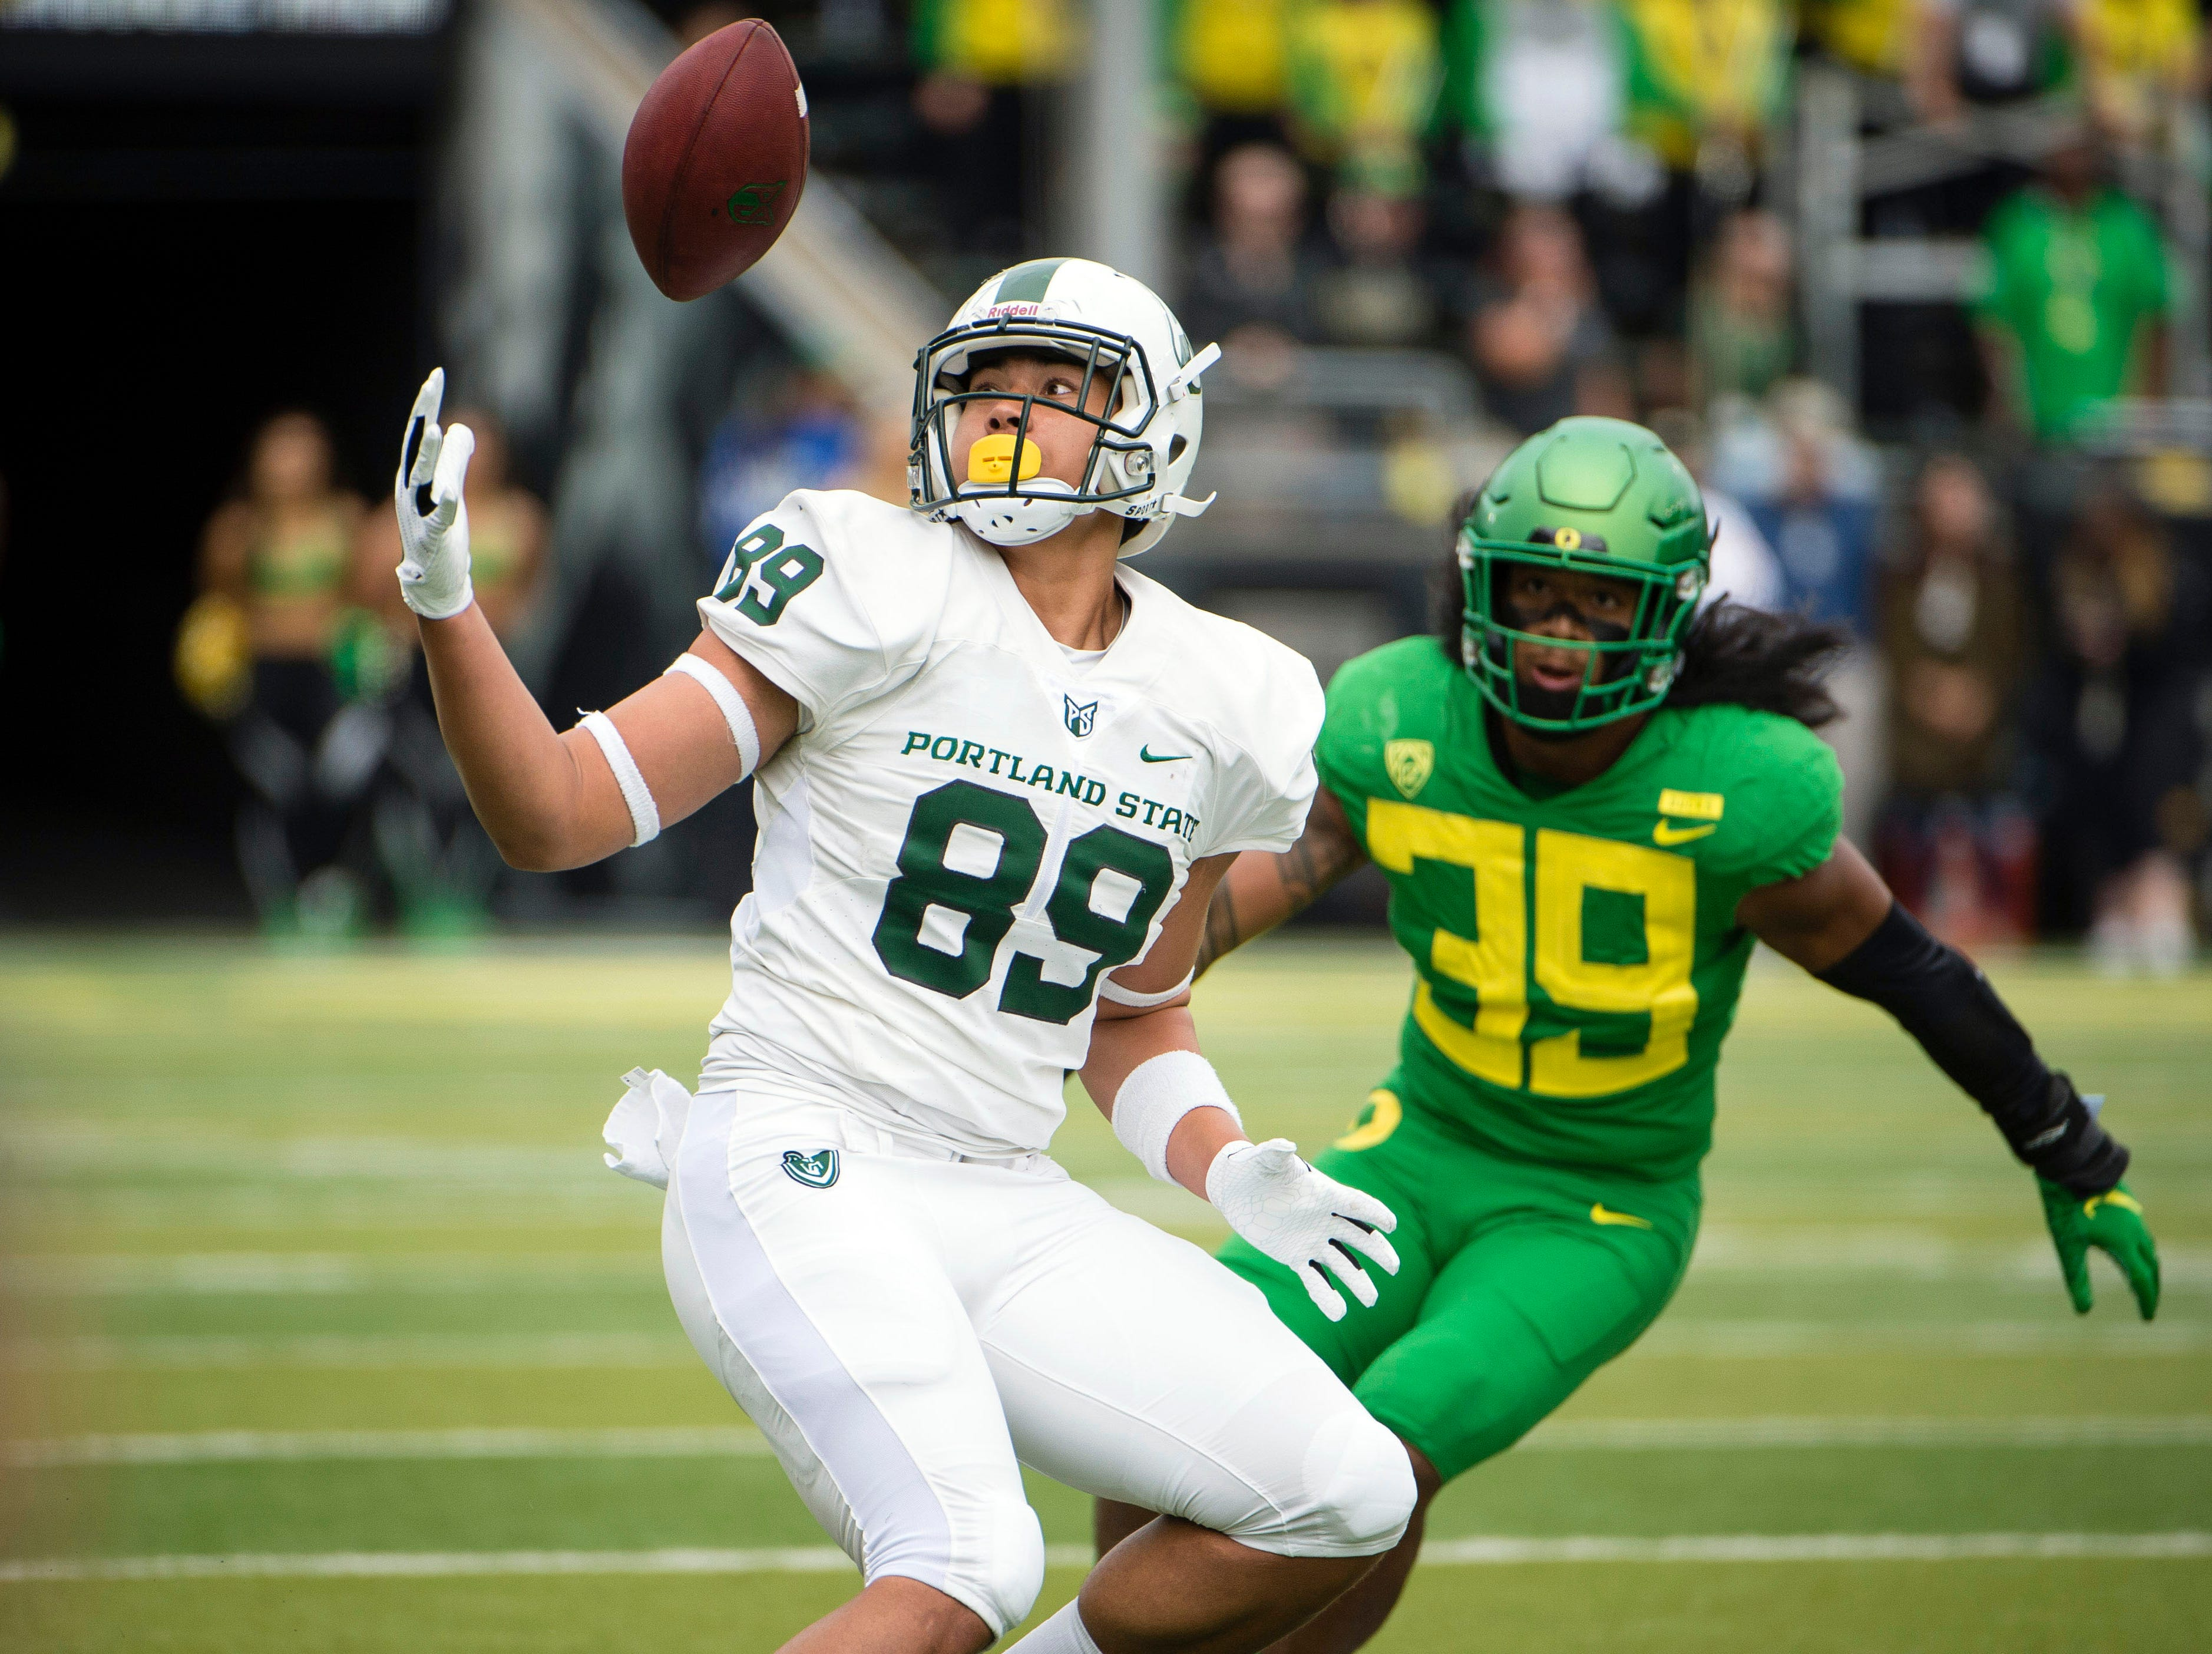 Portland State tight end Charlie Taumoepeau catches a pass against Oregon.